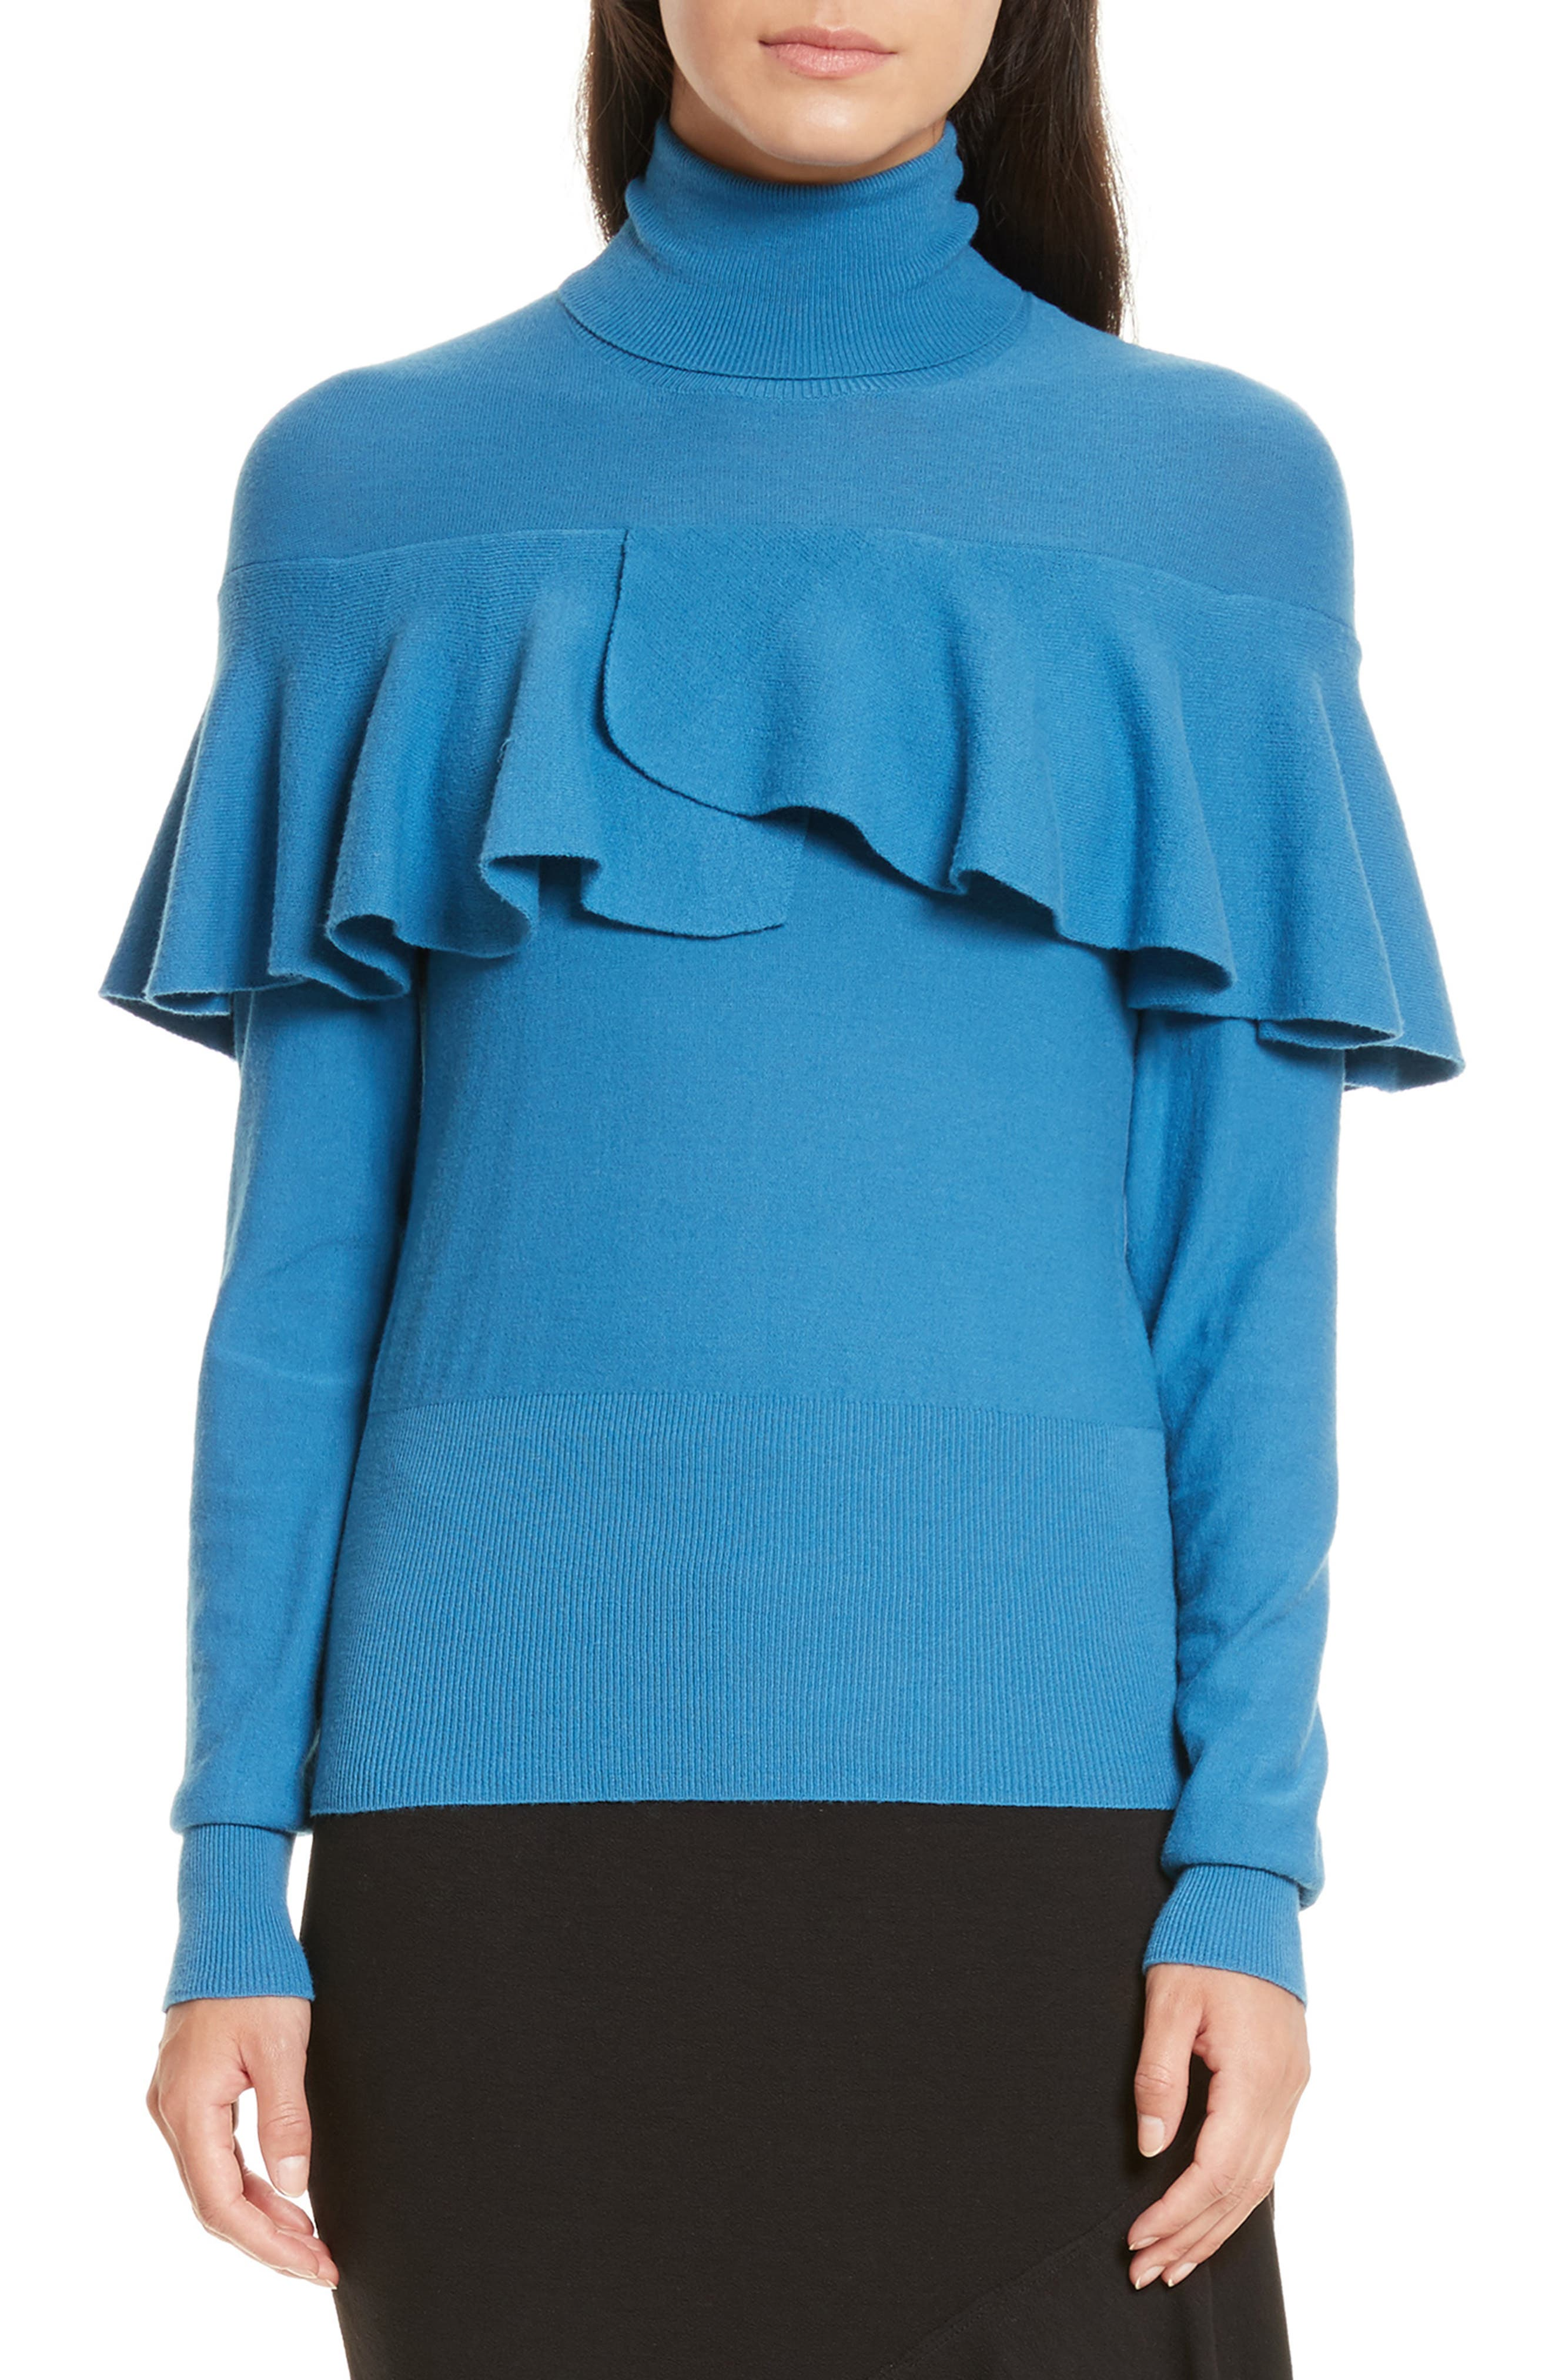 Tracy Reese Flounced Turtleneck Sweater